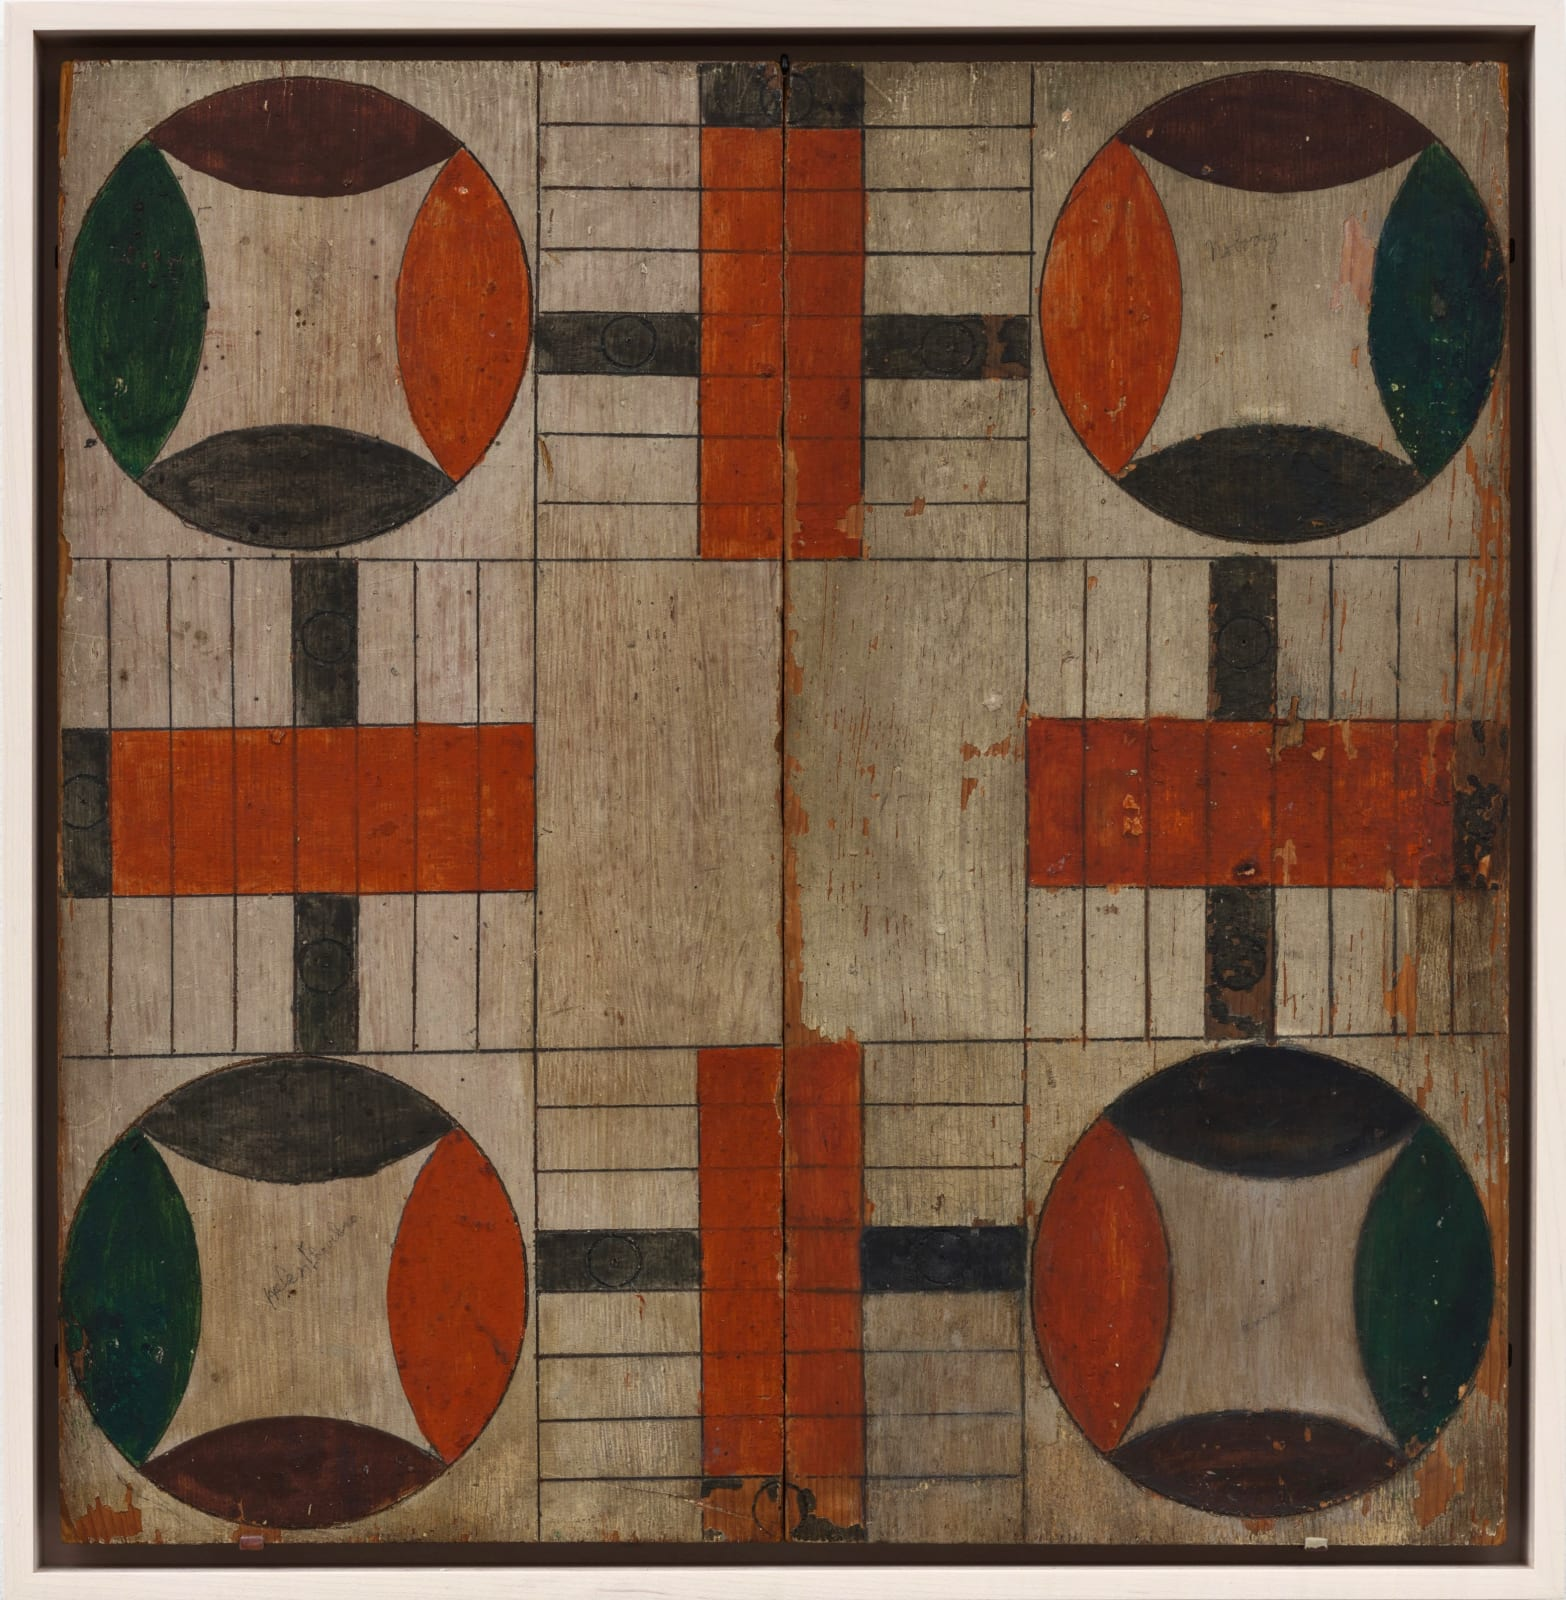 PARCHEESI GAME BOARD, LATE 19TH - EARLY 20TH CENTURY Oil enamel on wood panel 17 1/2 x 18 in. 44.5 x 45.7 cm. (AU 253)